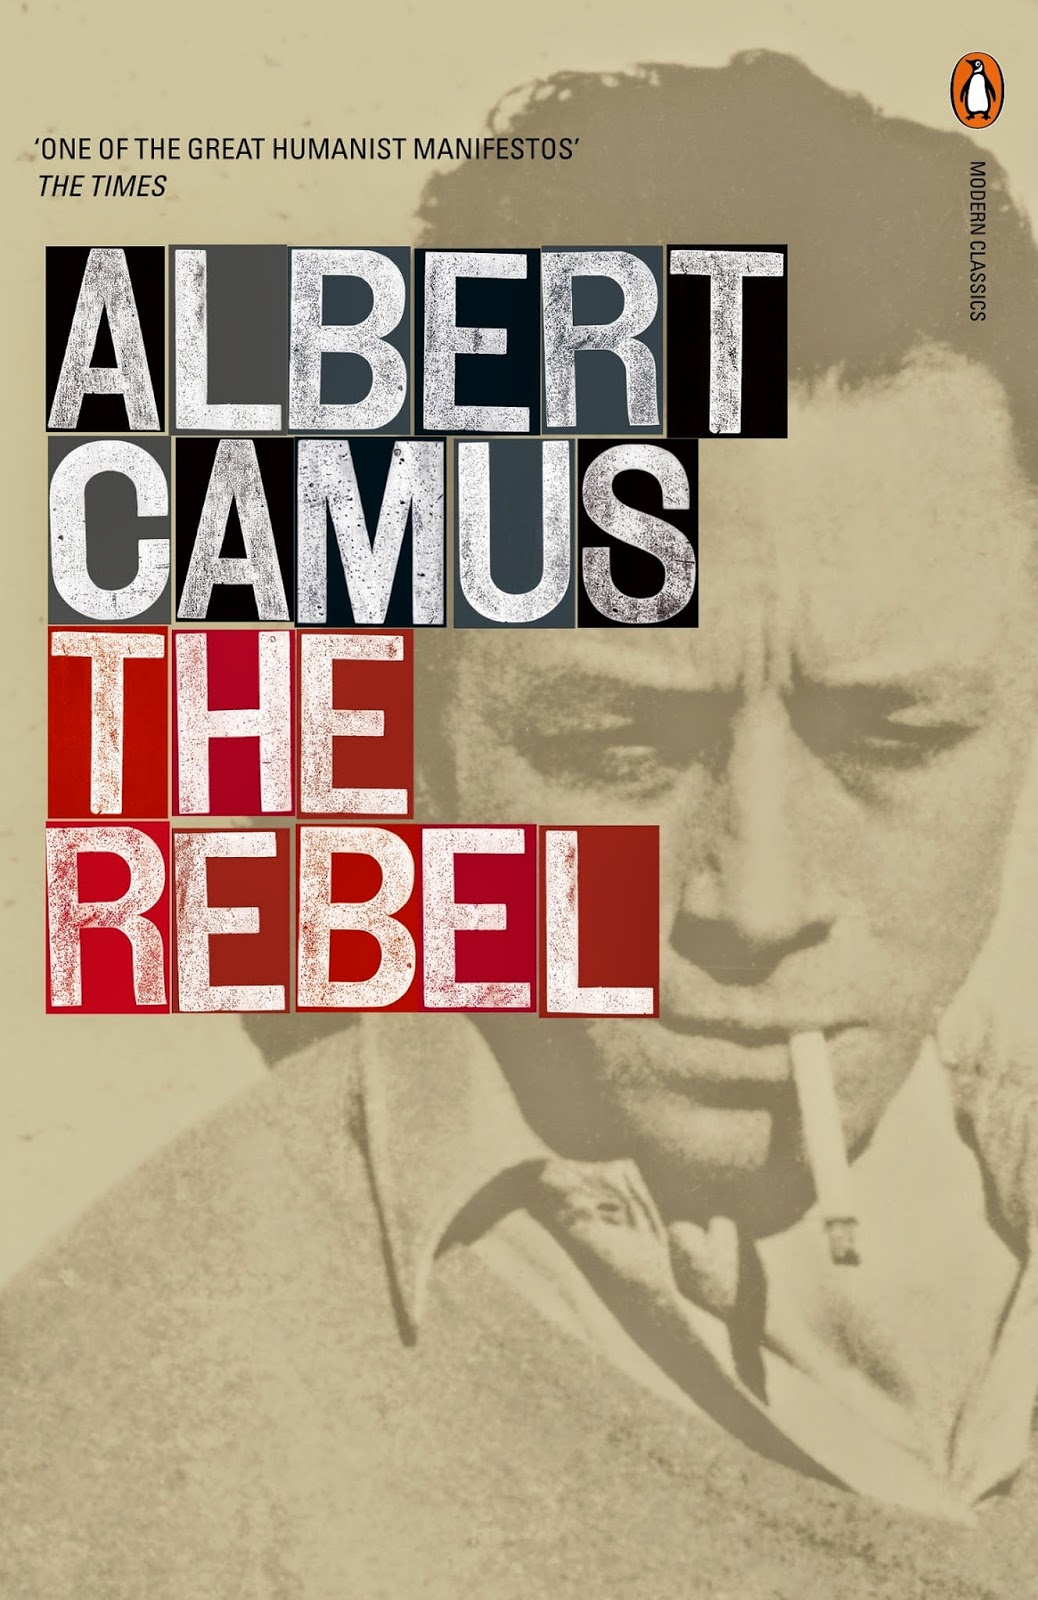 albert camus essay love of life albert camus on happiness despair albert camus essaybiographies ii albert camus